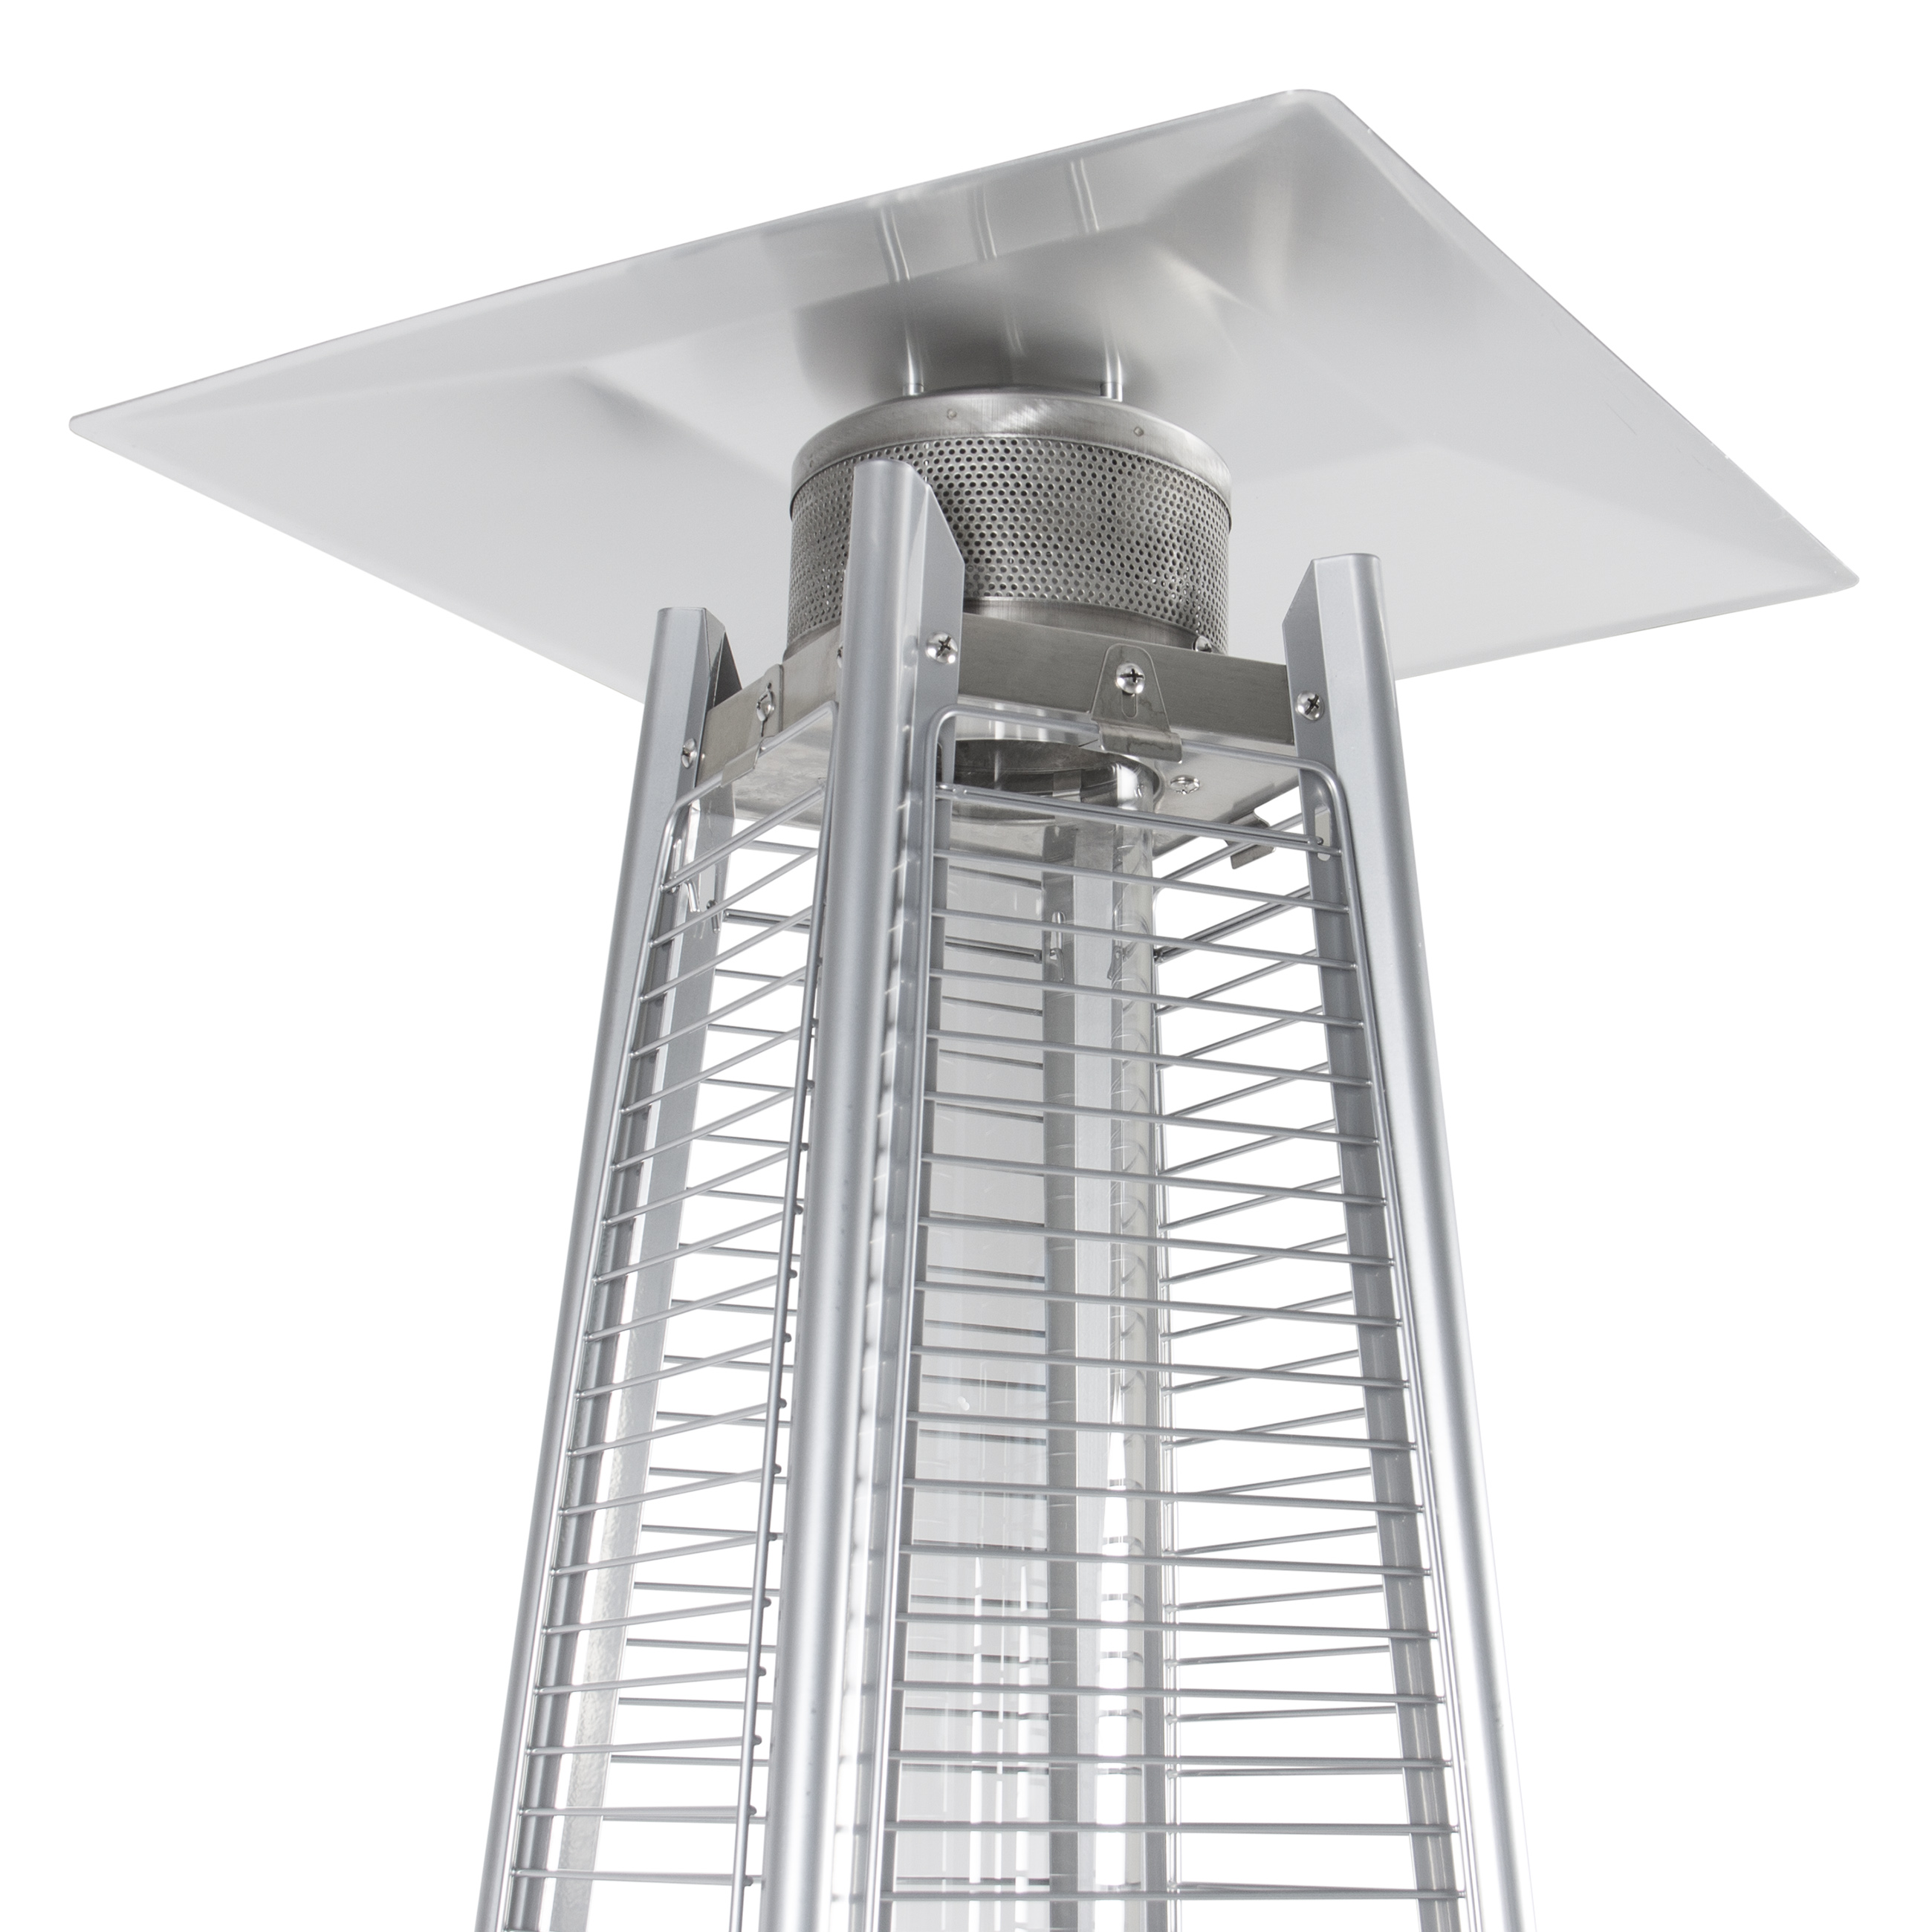 btu stainless steel patio heater outdoor pyramid propane glass tube dancing flames walmartcom